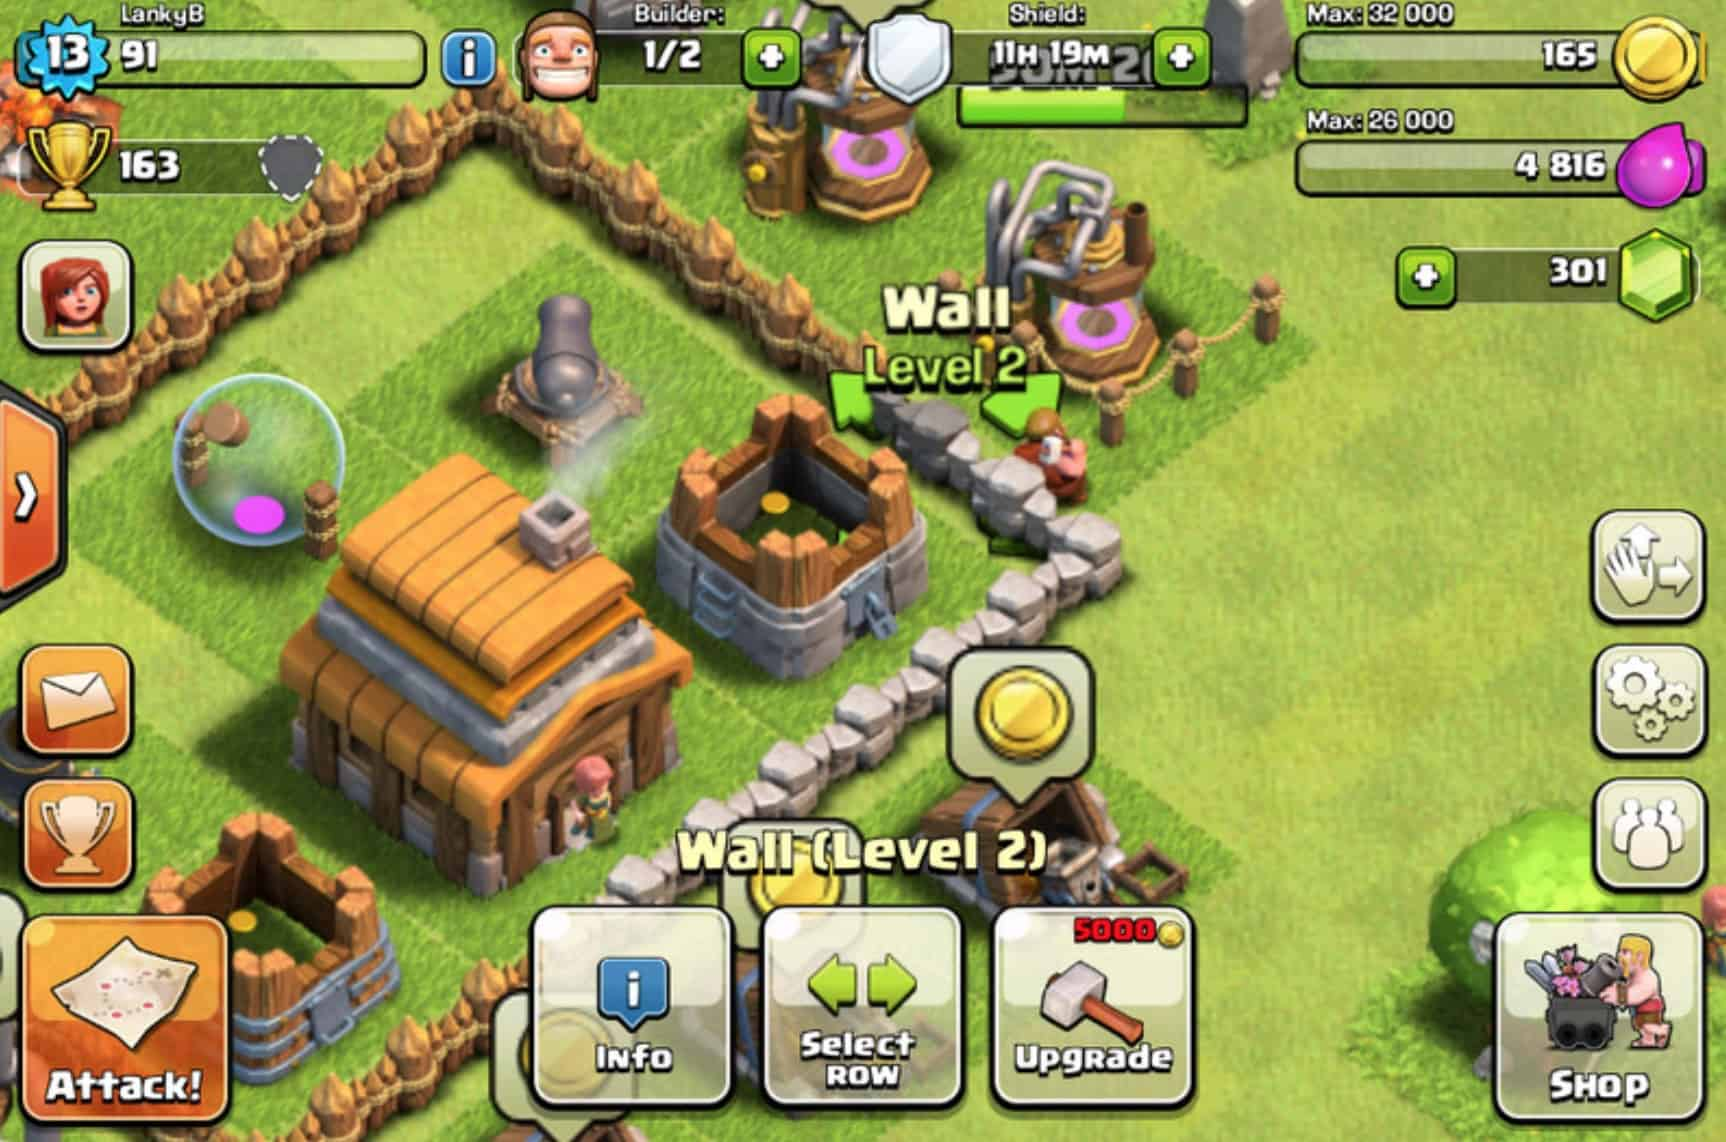 9 Best Clash of Clans Tips | Appamatix - All About Apps